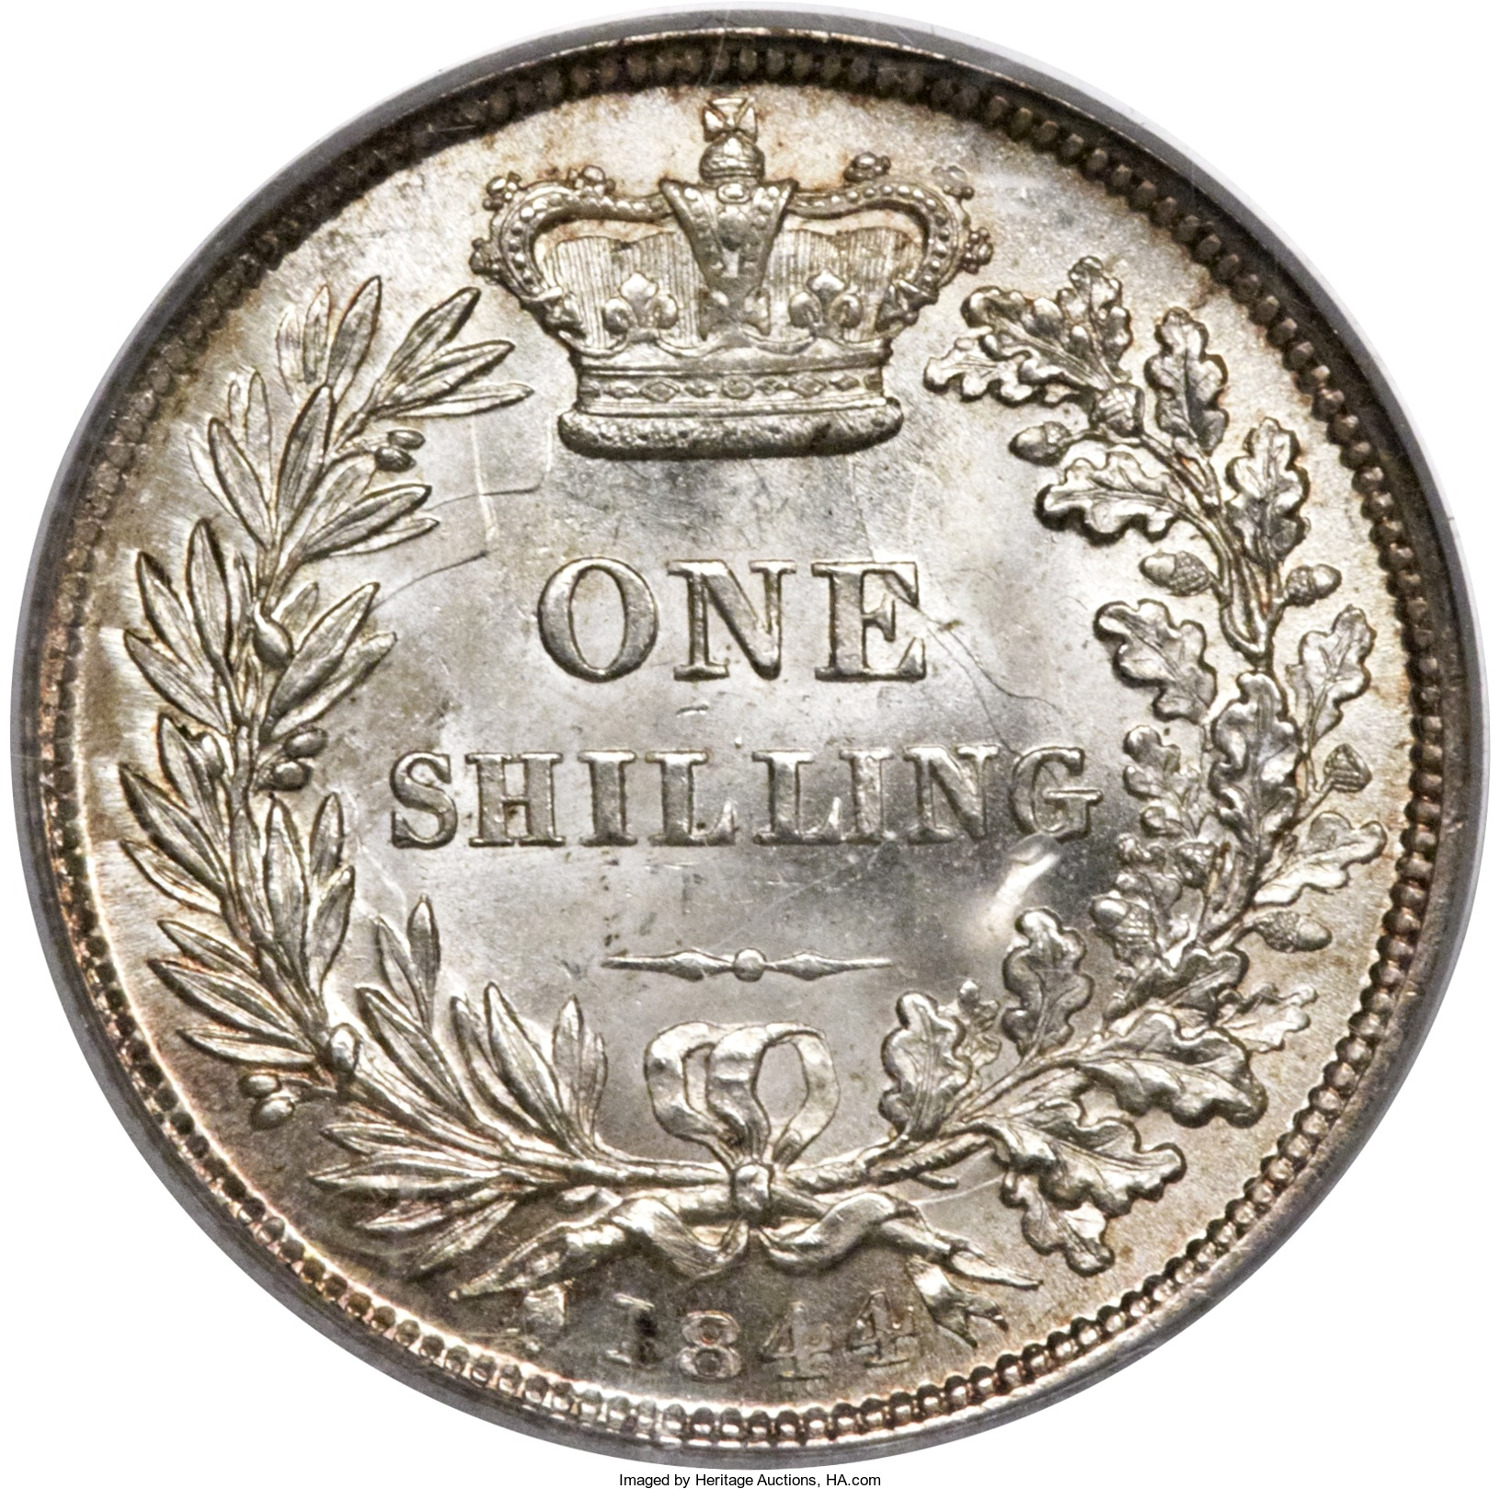 Shilling 1844: Photo Great Britain 1844 shilling